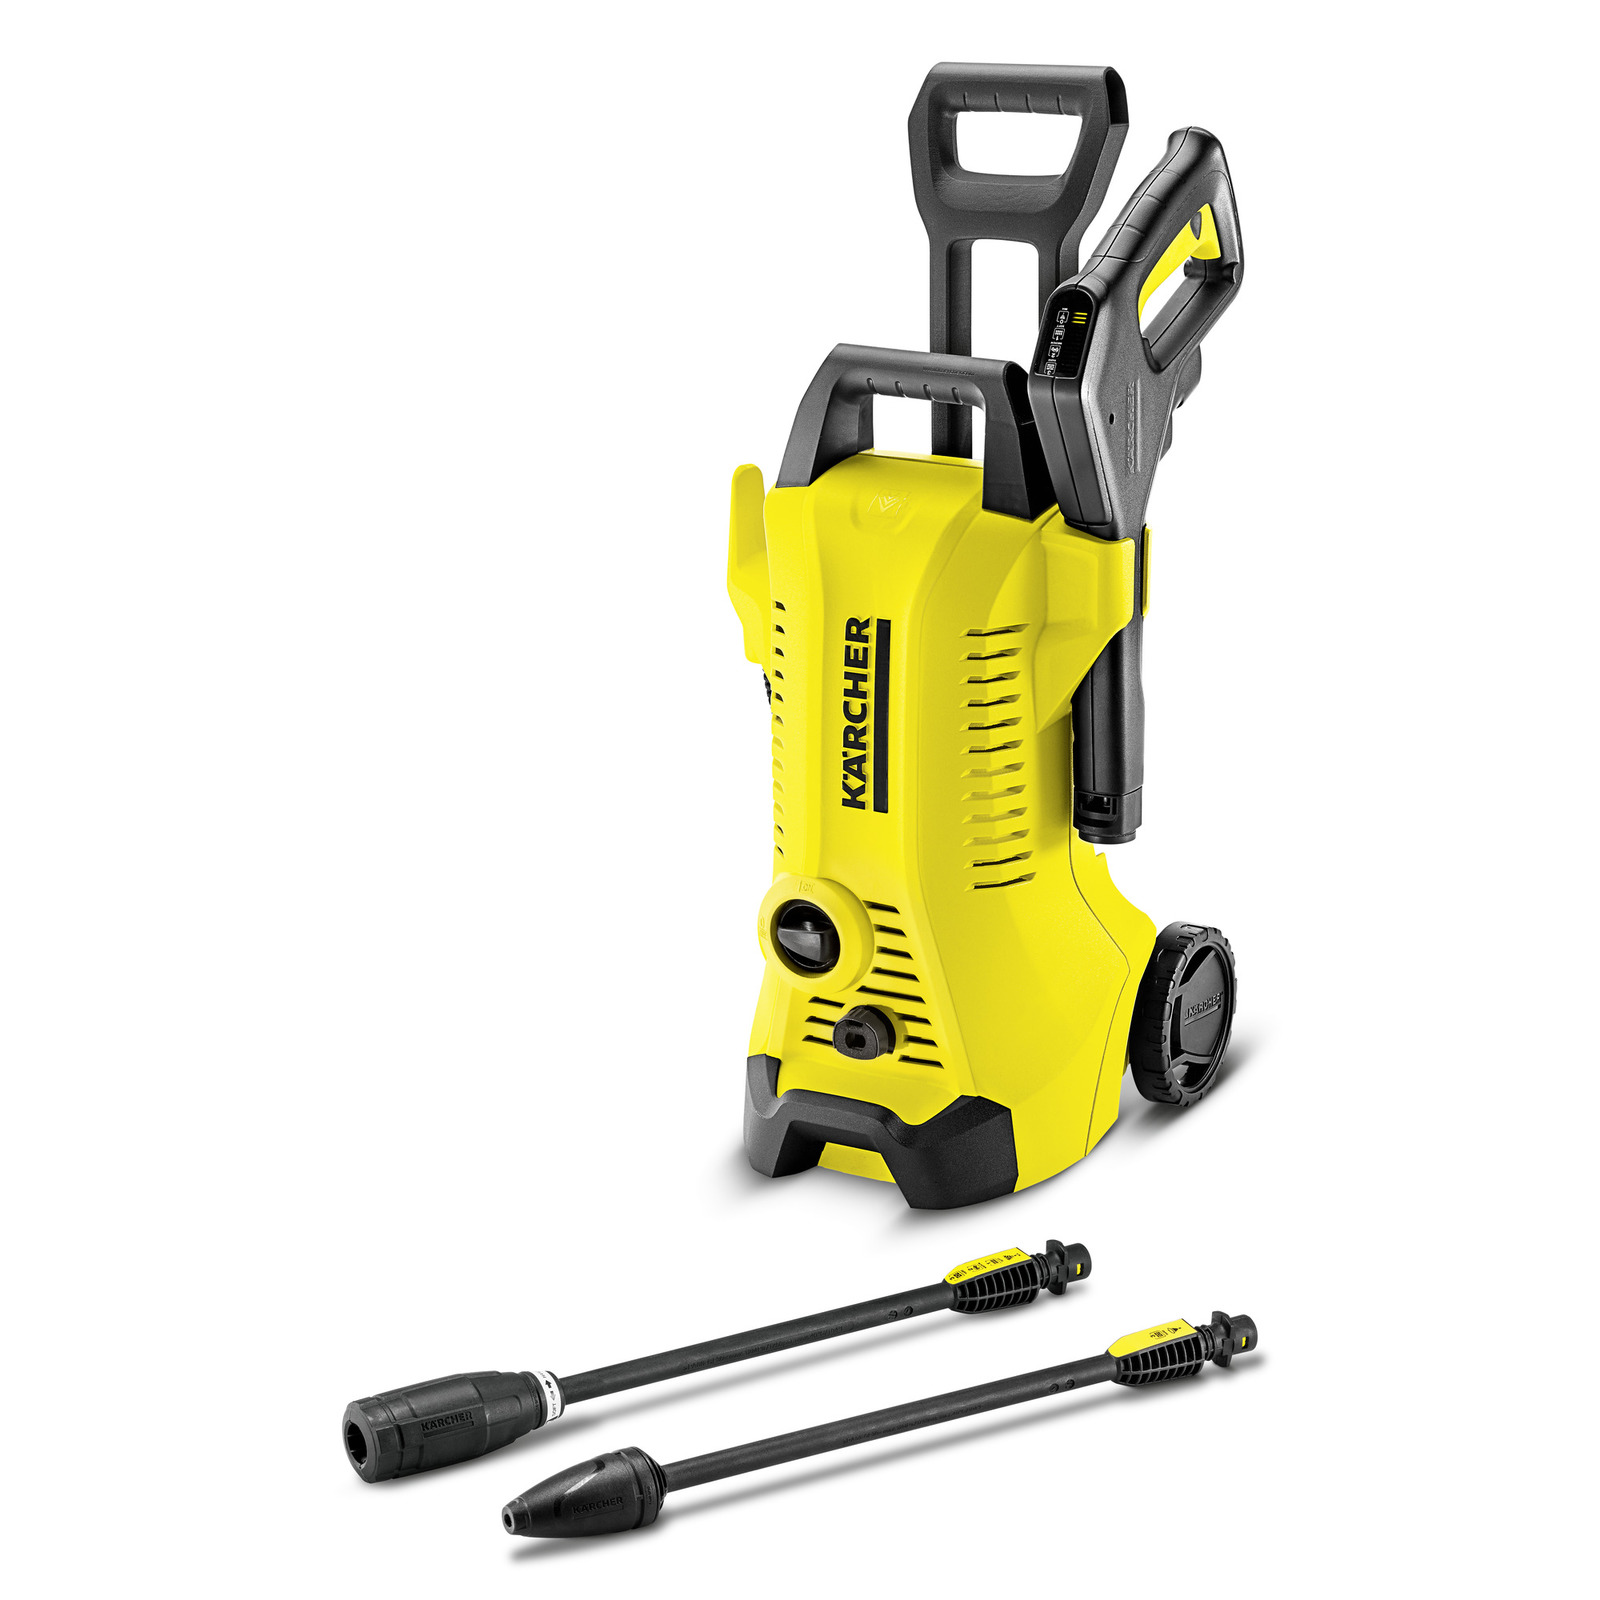 Car washing Karcher (Karcher): specifications, photos and reviews